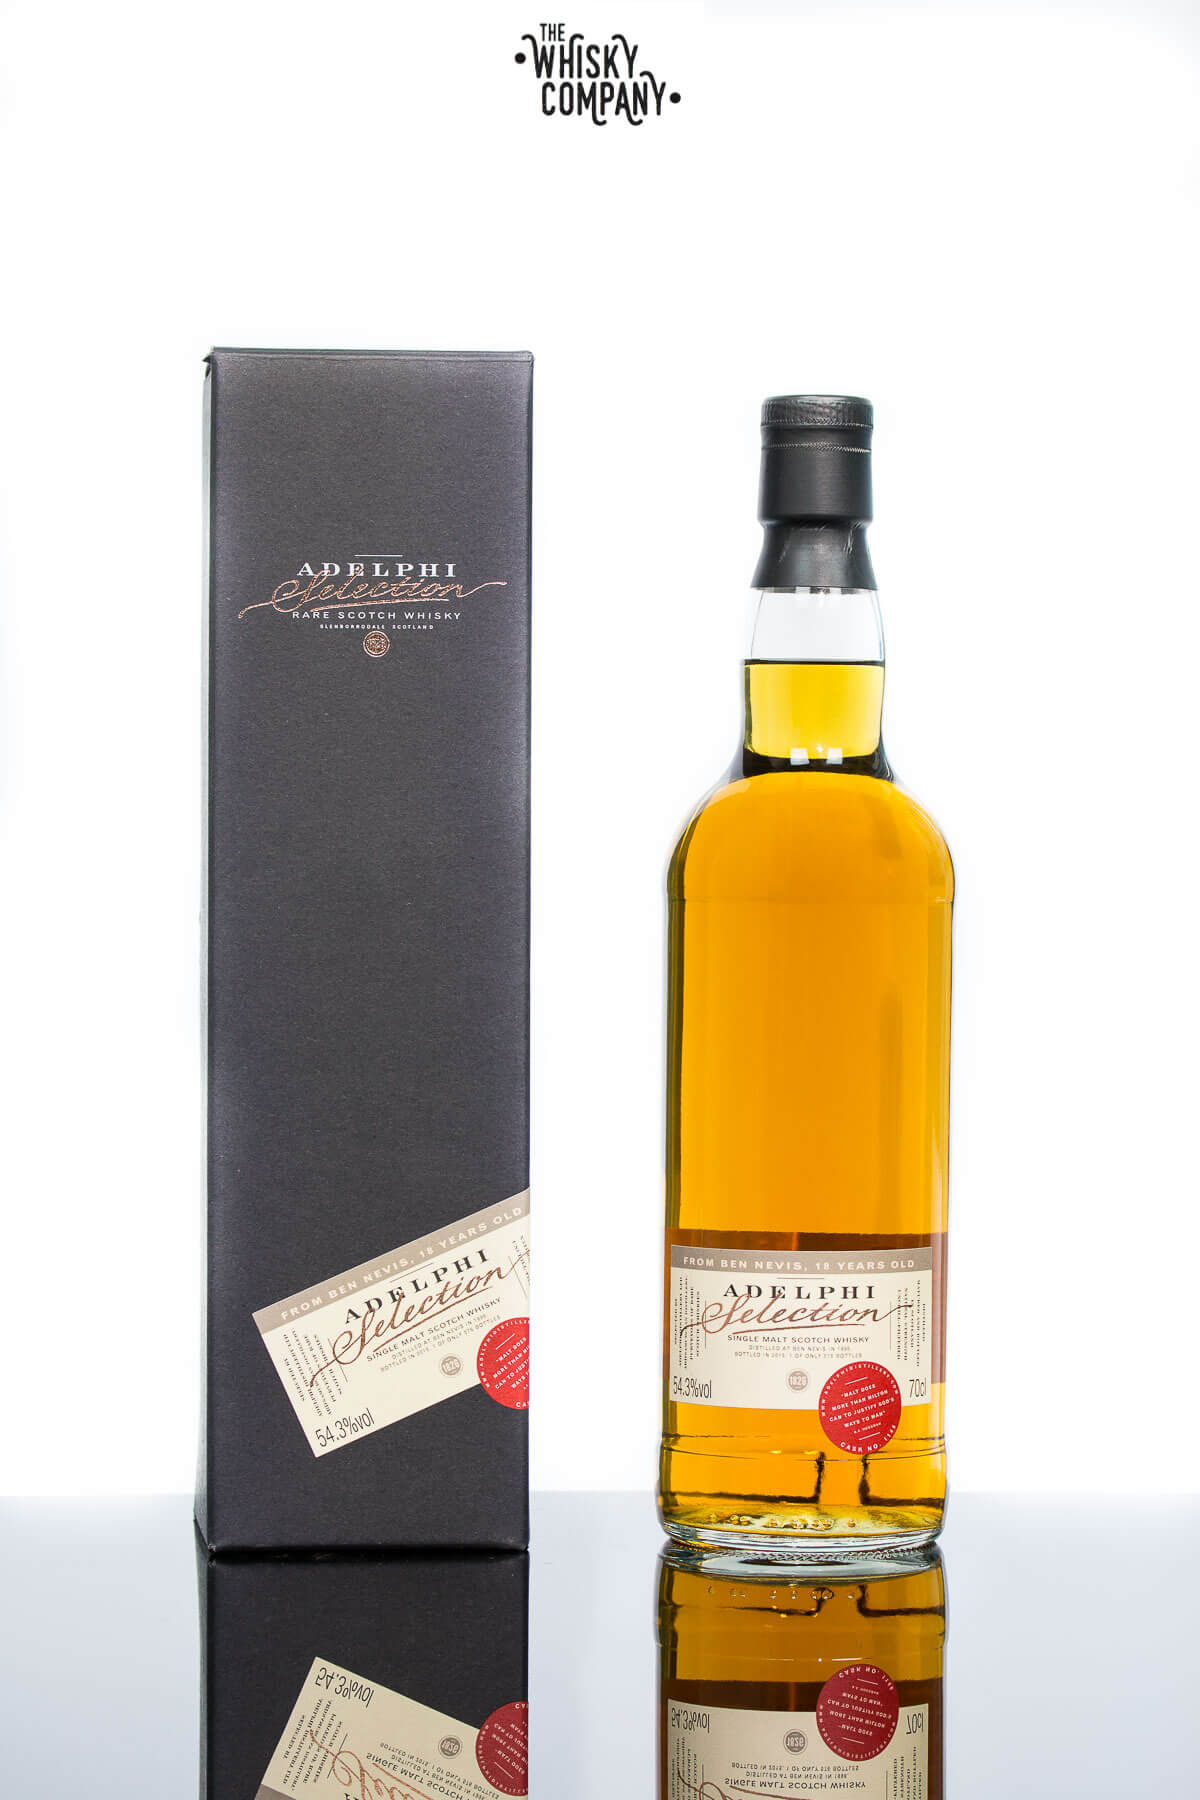 Adelphi 1996 Ben Nevis 18 Years Old Highland Single Malt Scotch Whisky (700ml)